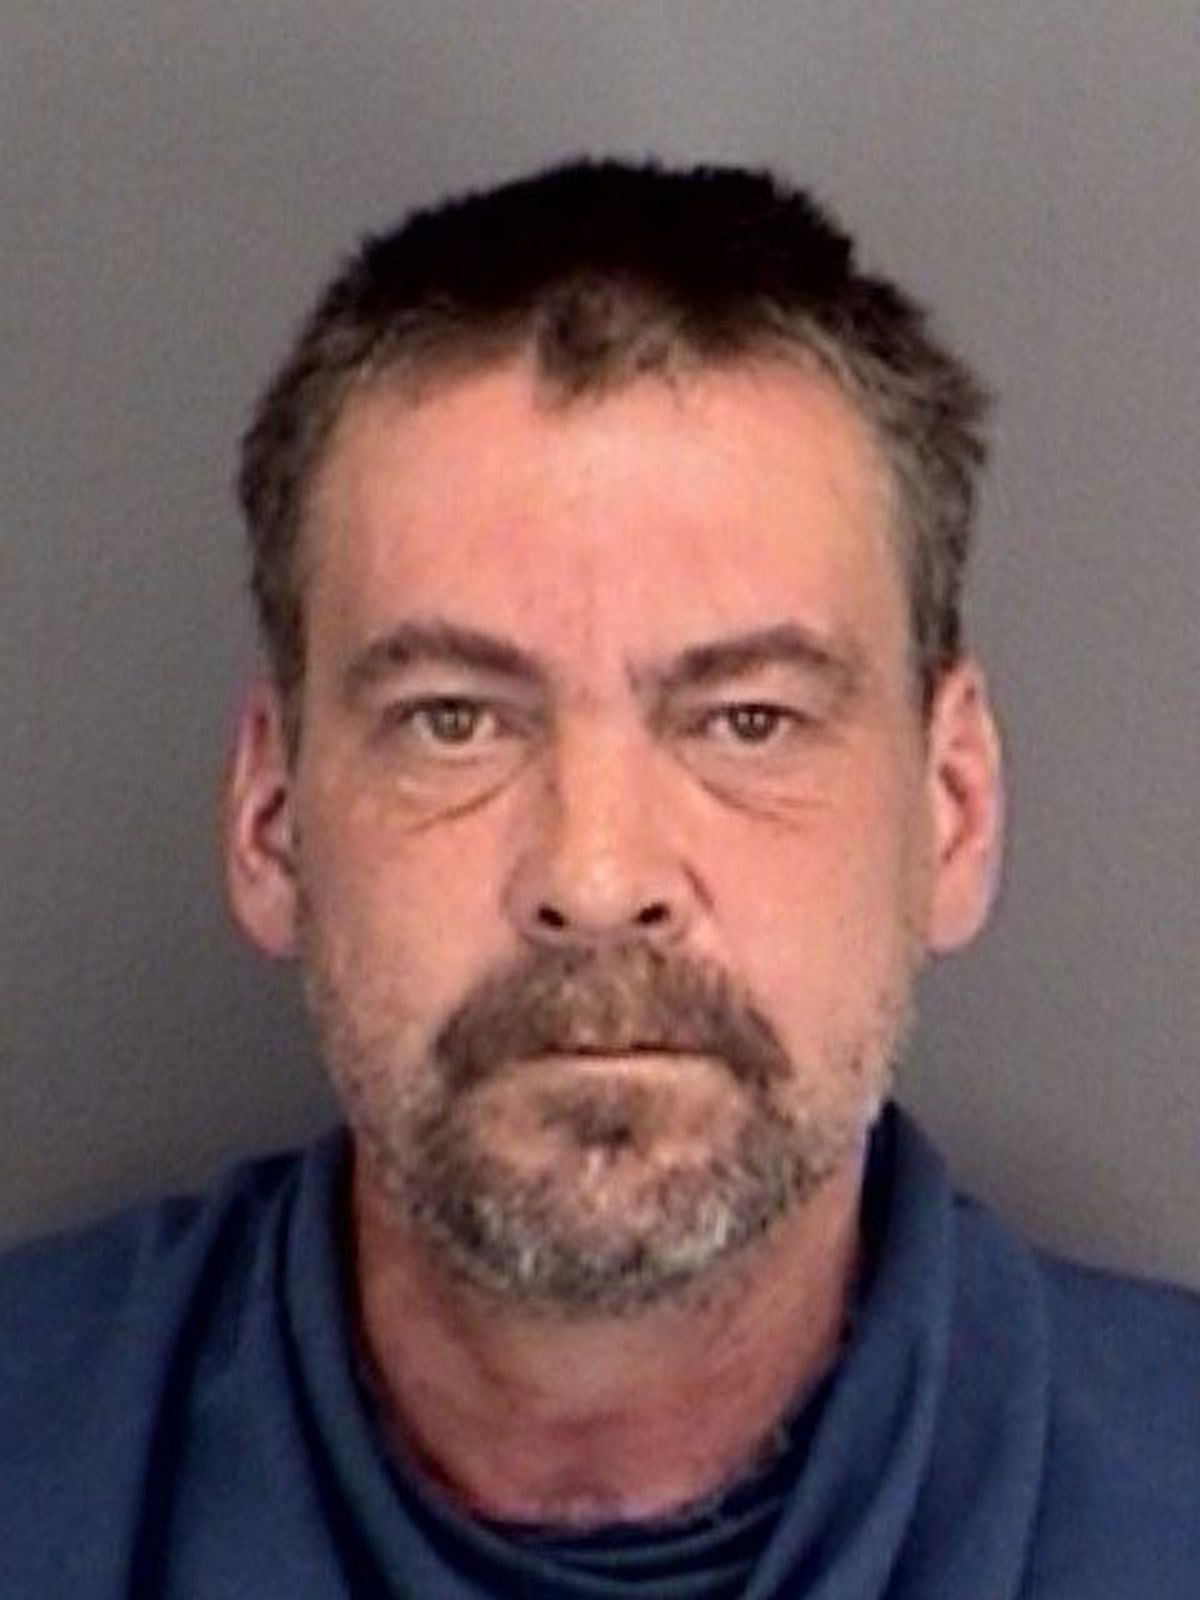 wichita falls man charged with murder following alleged